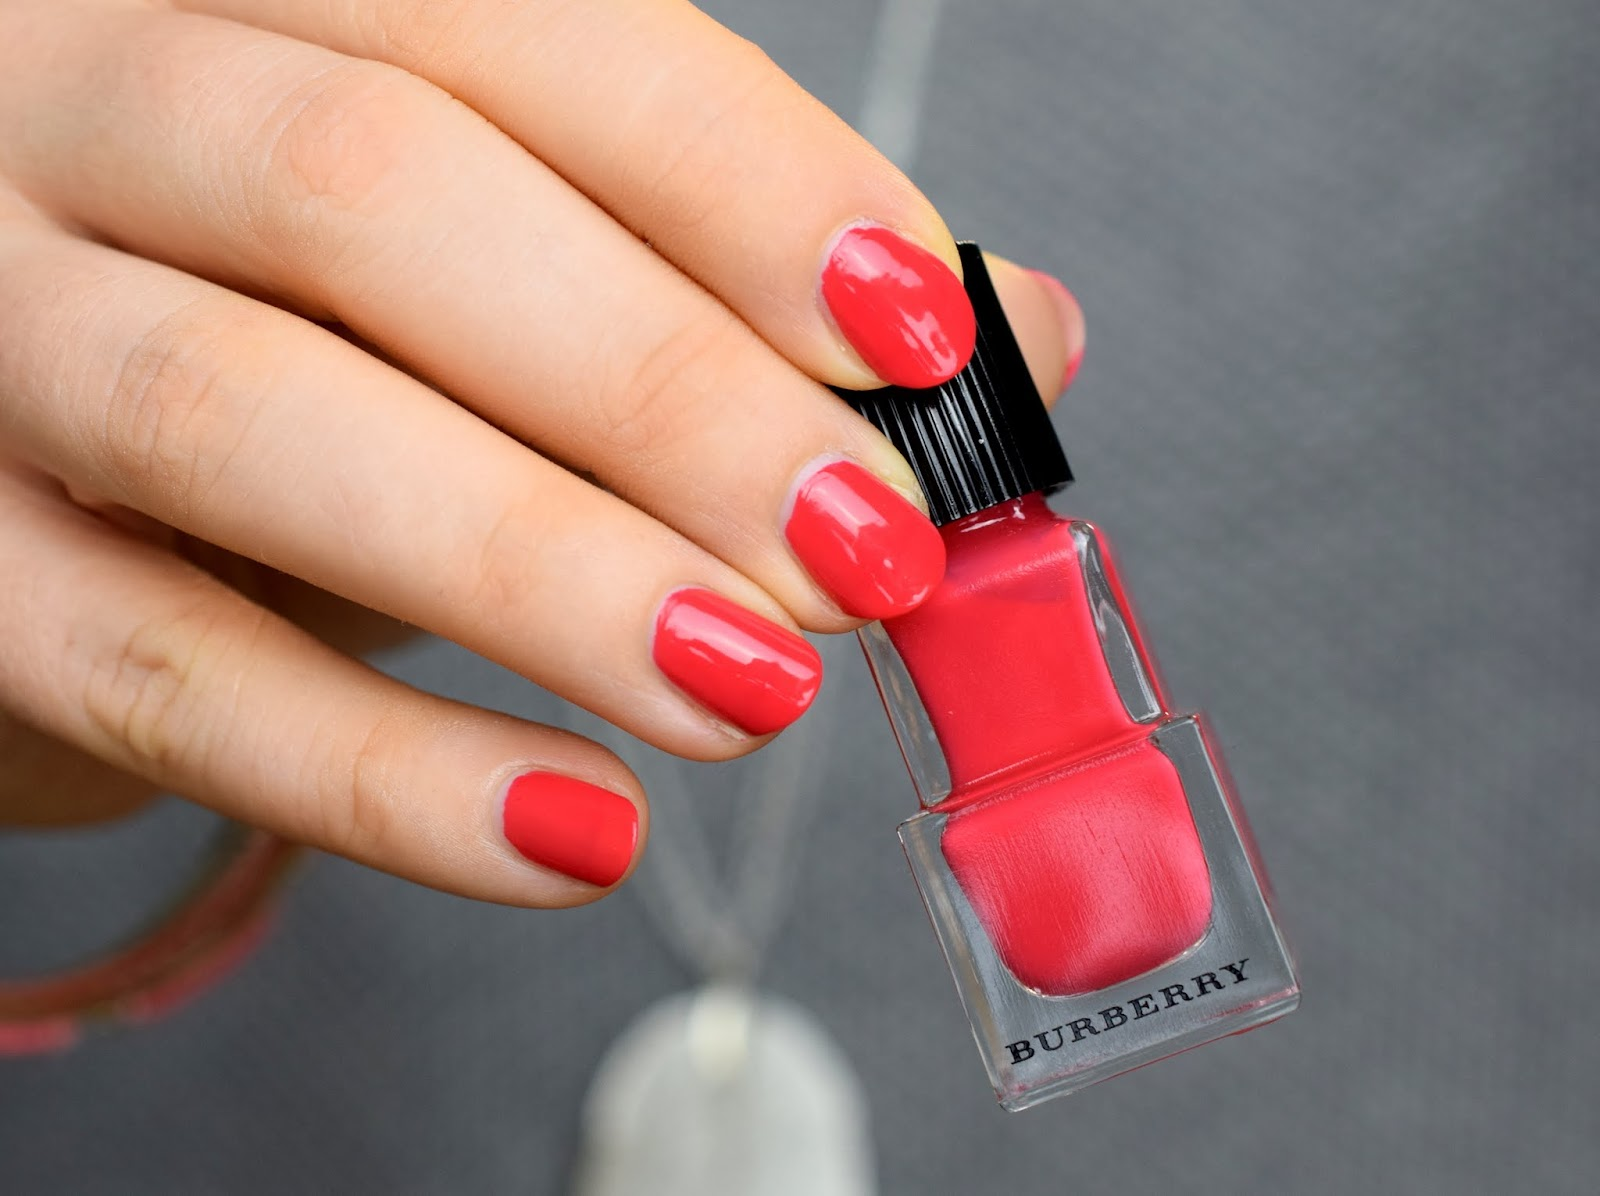 Burberry Spring / Summer 2015 - Nail Polish Bright Coral Red